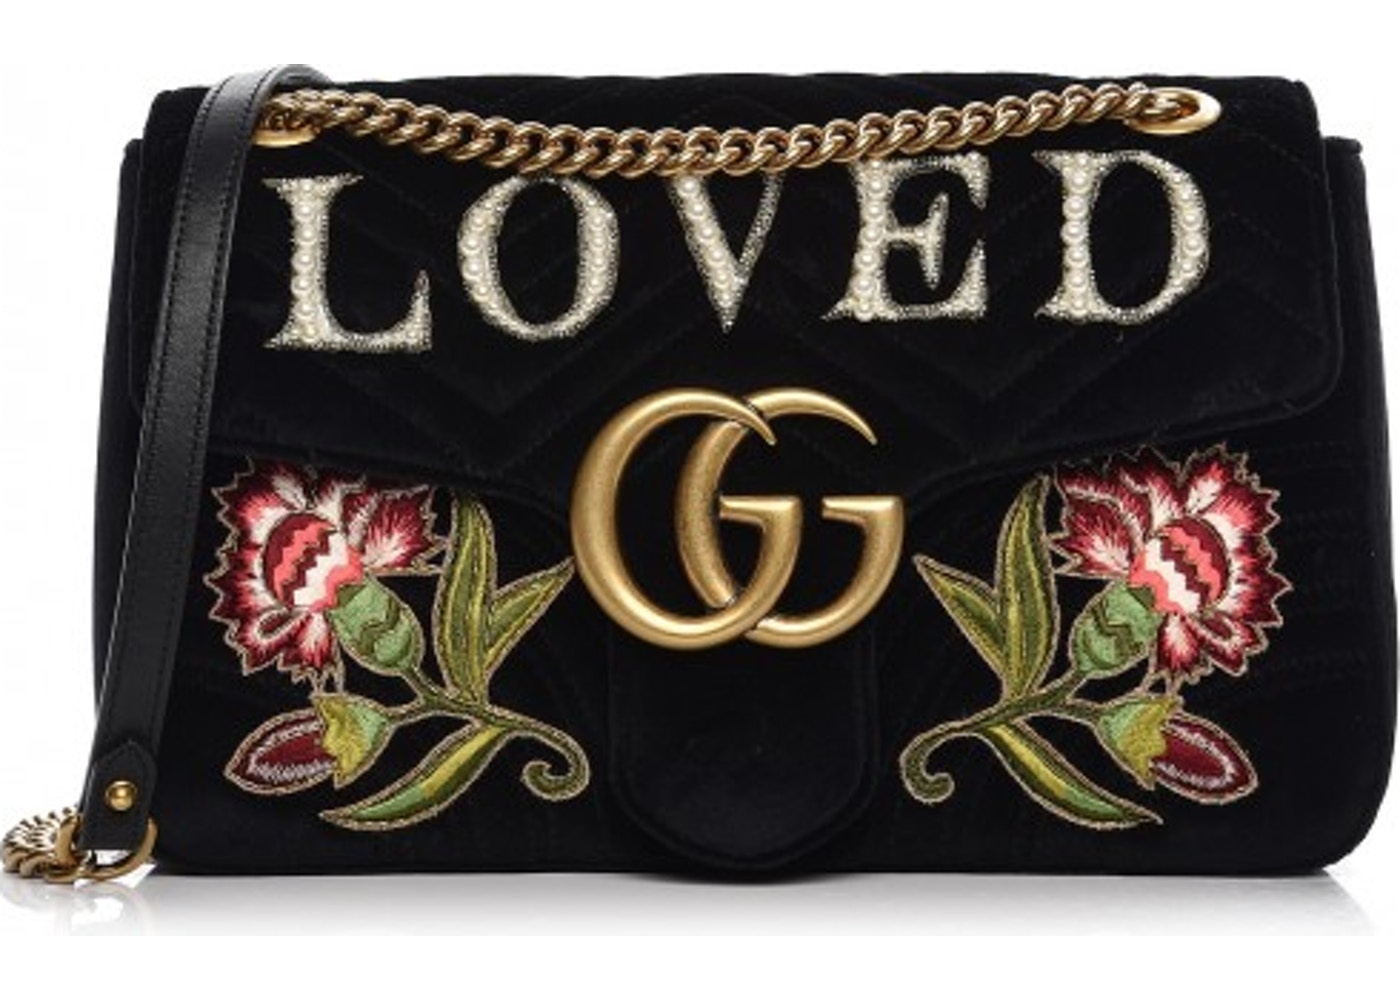 3575a0678203 Gucci Marmont Shoulder Bag Embroidered Medium Black Multicolor. Embroidered  Medium Black Multicolor